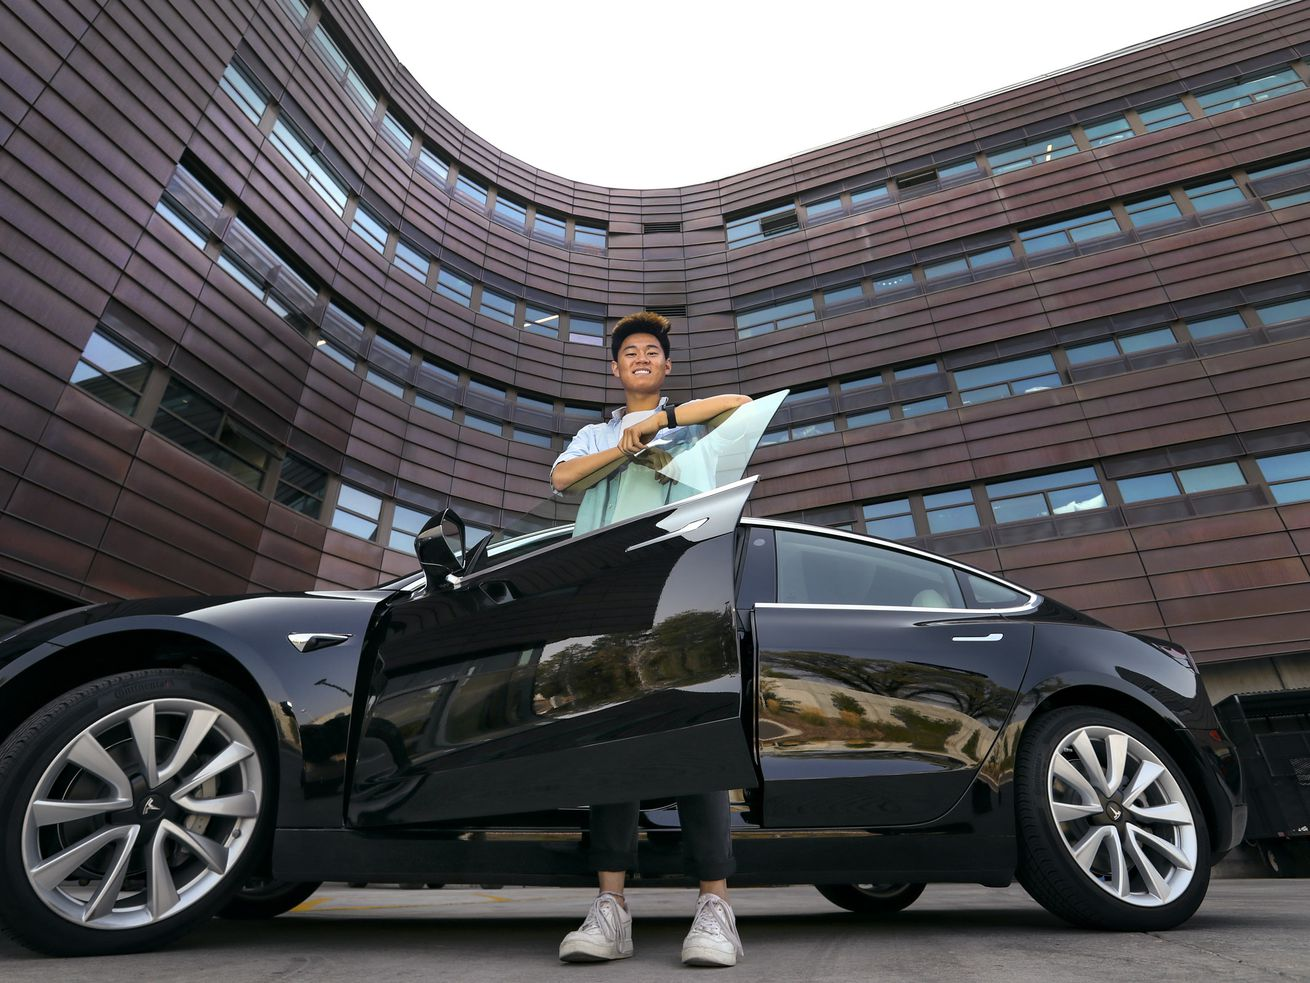 University of Utah freshman and game developer Andrew Wang poses for a photo with his Tesla Model 3 outside the Lassonde Entrepreneur Institute Studio building on the University of Utah campus in Salt Lake City on Tuesday, Oct. 6, 2020.